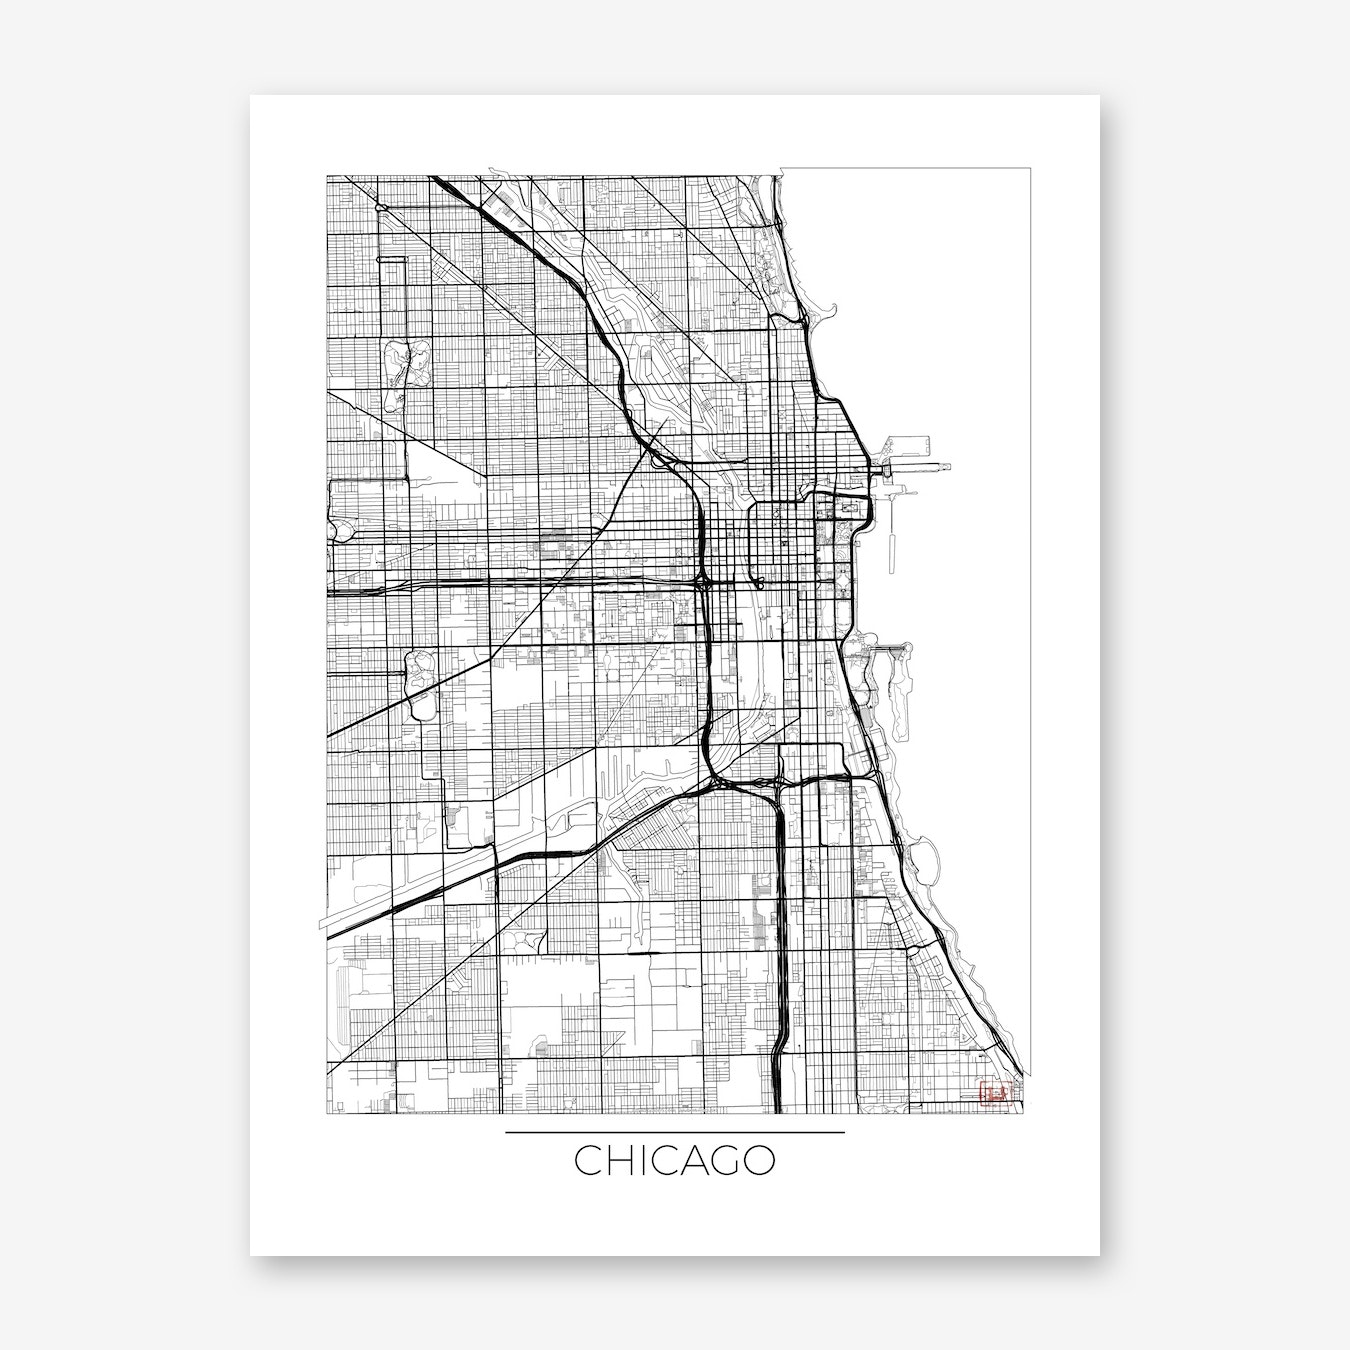 Chicago Map Minimal Art Print on chicago illinois map, chicago road map with numbers, chicago map vintage, chicago wall murals, chicago sculpture wall colors, chicago map wallpaper, chicago street block numbers, chicago neighborhood map, chicago state map, chicago map fabric, chicago map glass, chicago map design, chicago map canvas, chicago skyline 2014, chicago wall decor, chicago black, chicago street map, chicago metro map, chicago map artwork, chicago map coasters,